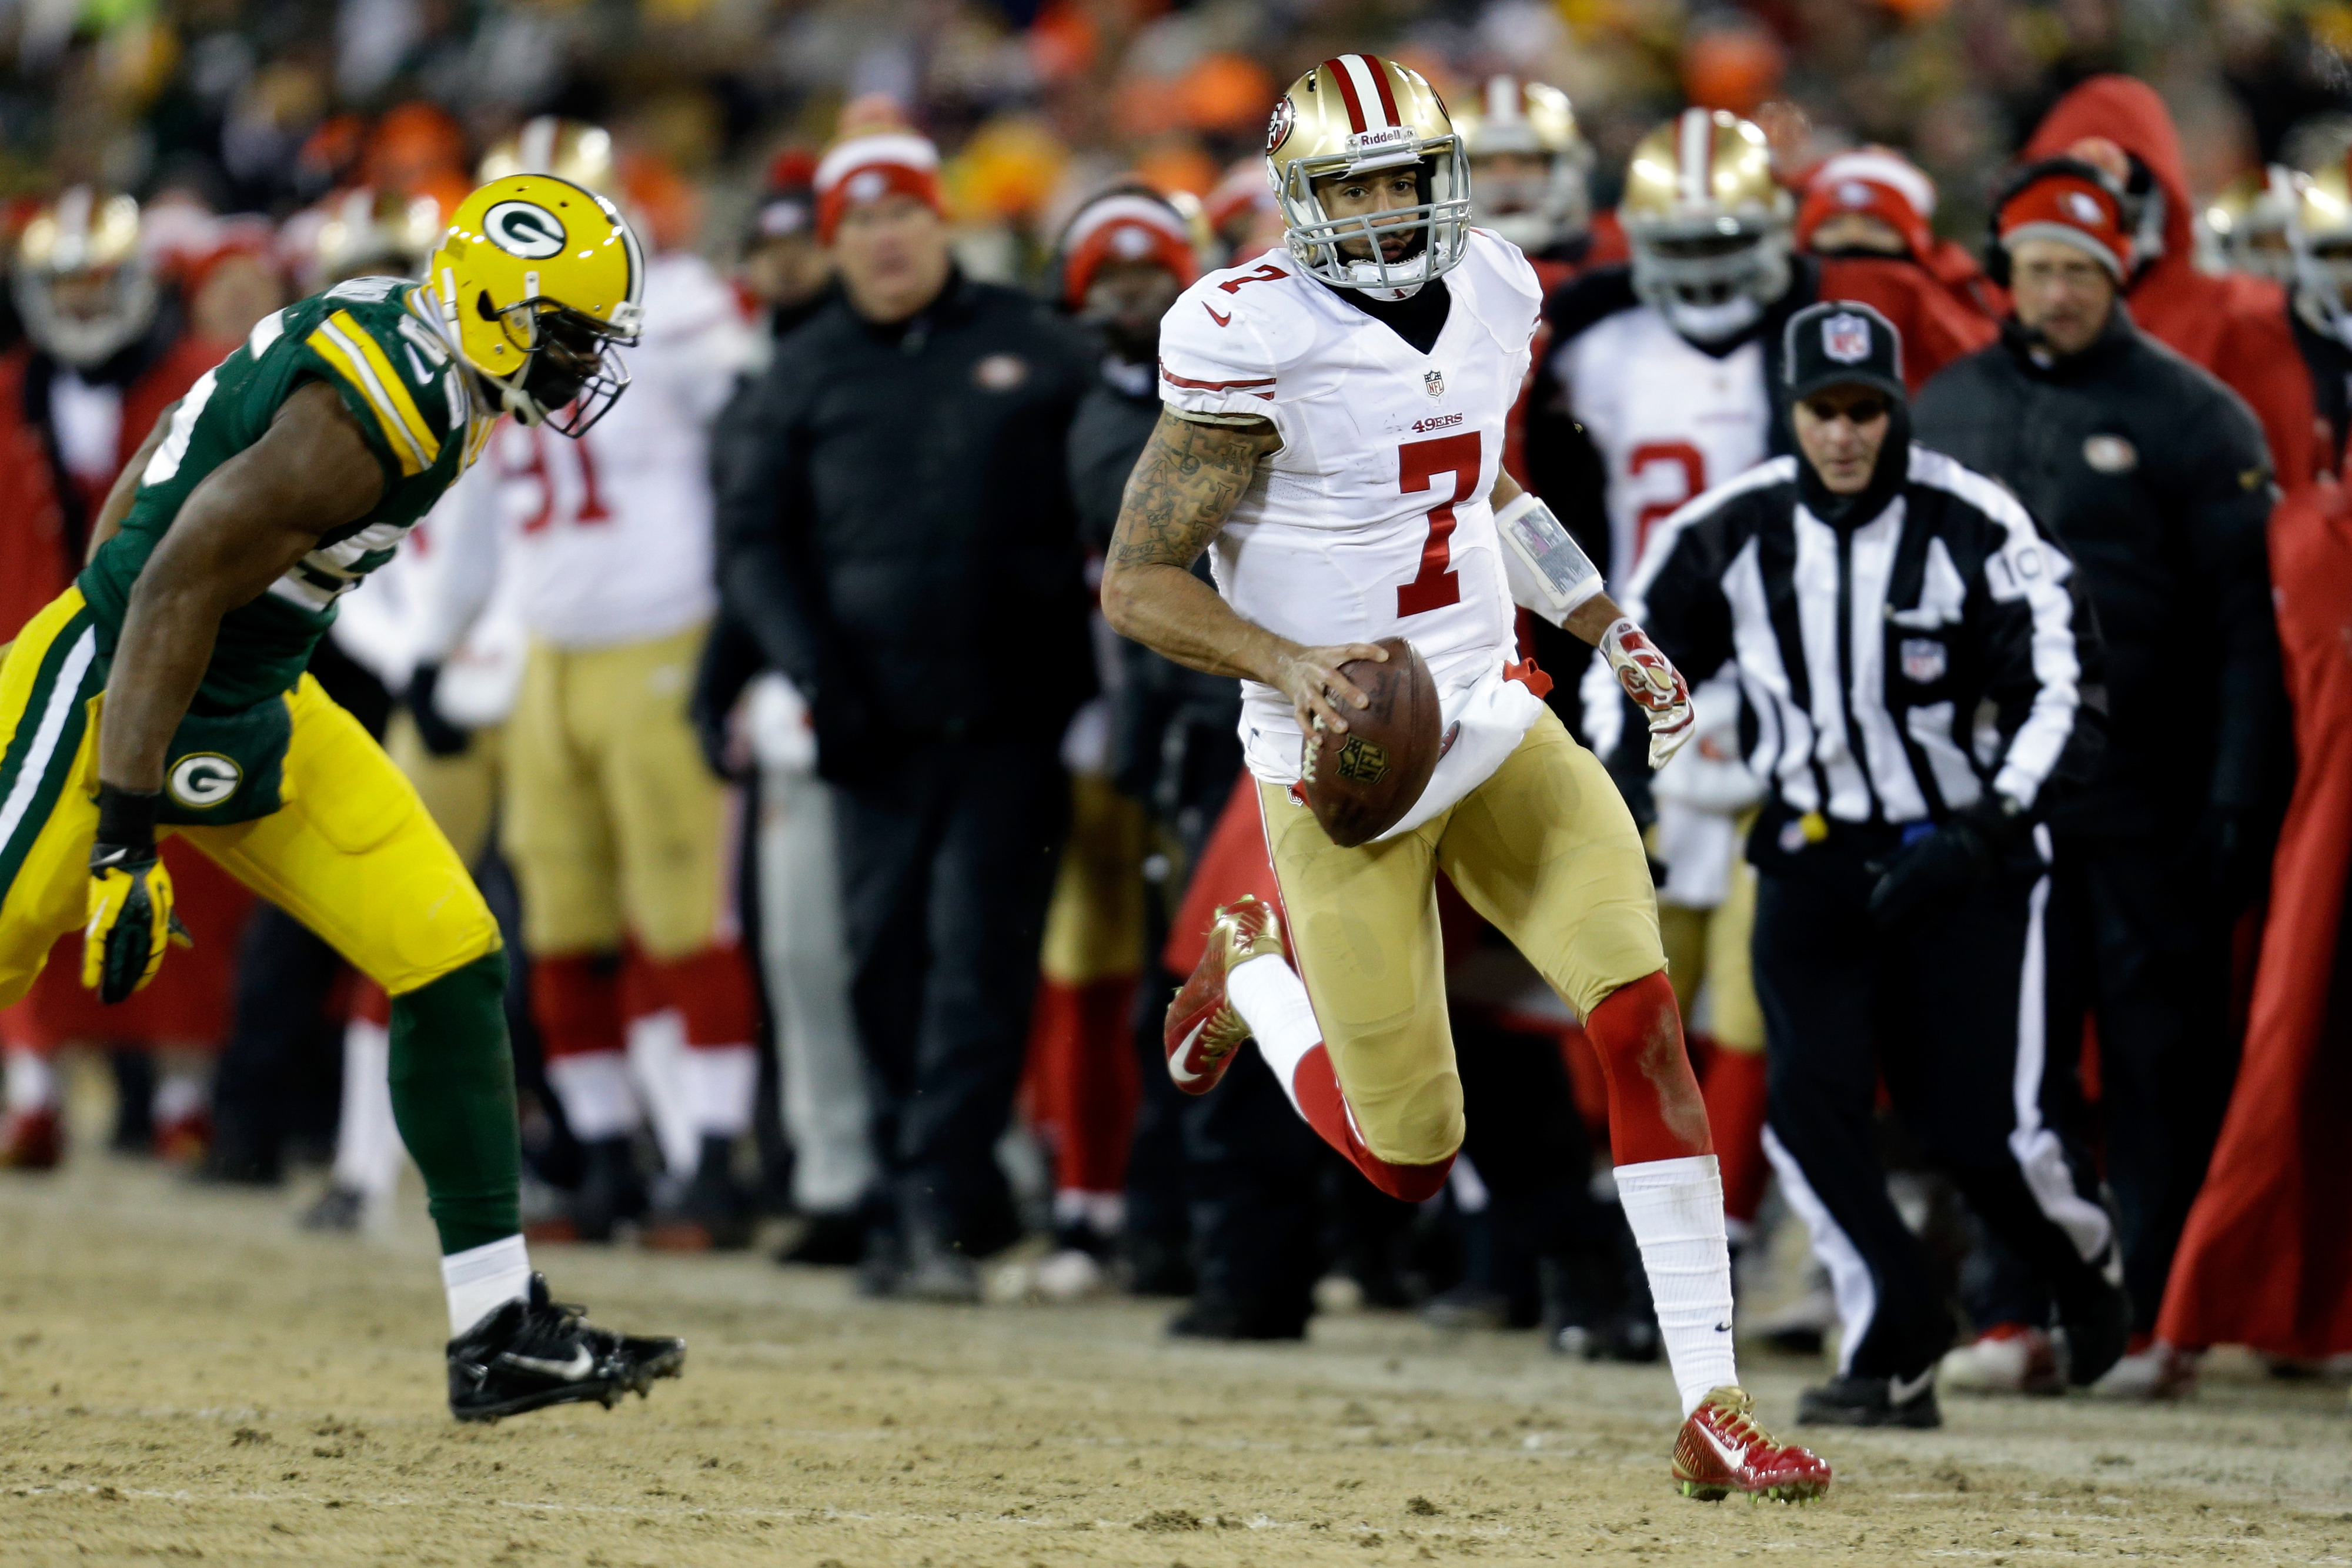 2014 NFL playoffs, 49ers vs. Panthers: Can the Panthers contain Colin Kaepernick?